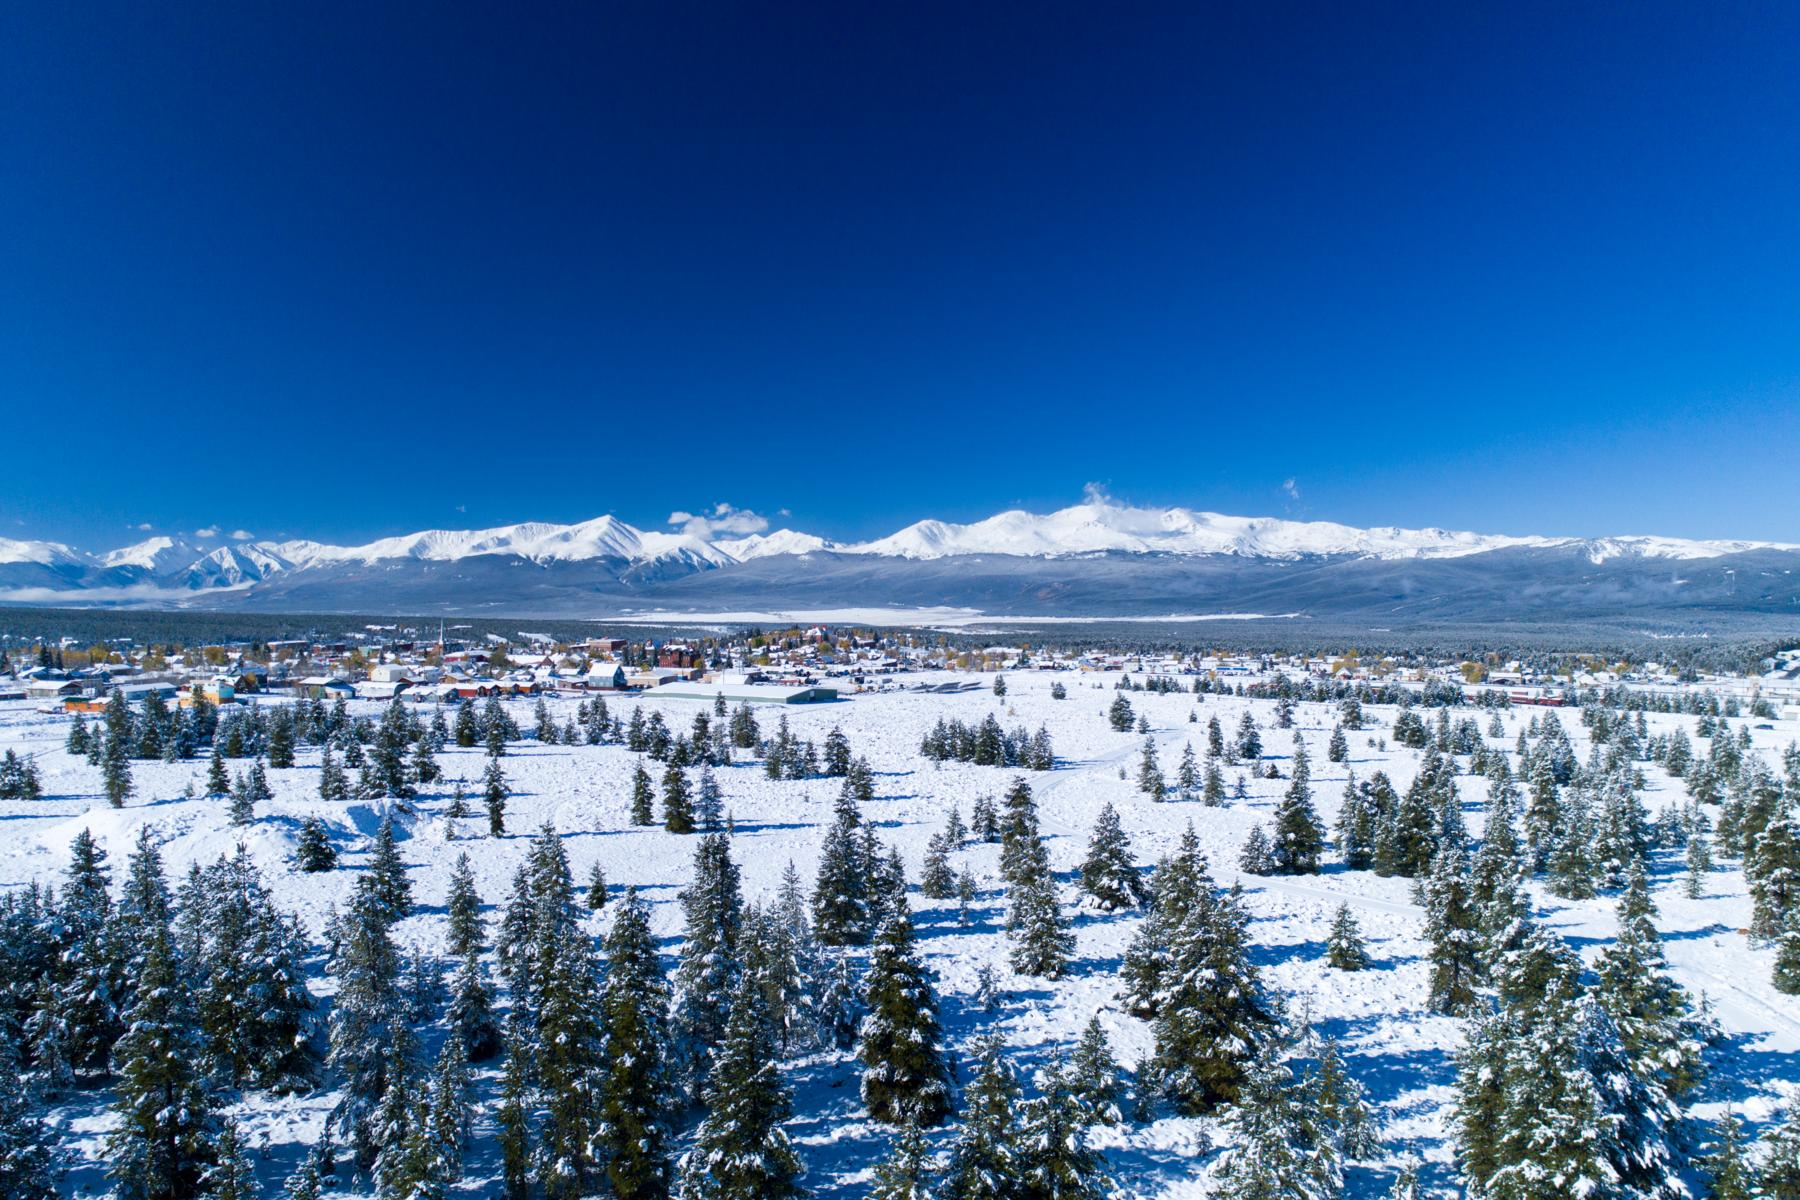 Property for Active at Ideal For An Apartment Building Or Mixed Use Development 388 Sizer Block 2, Lot 14 Leadville, Colorado 80461 United States